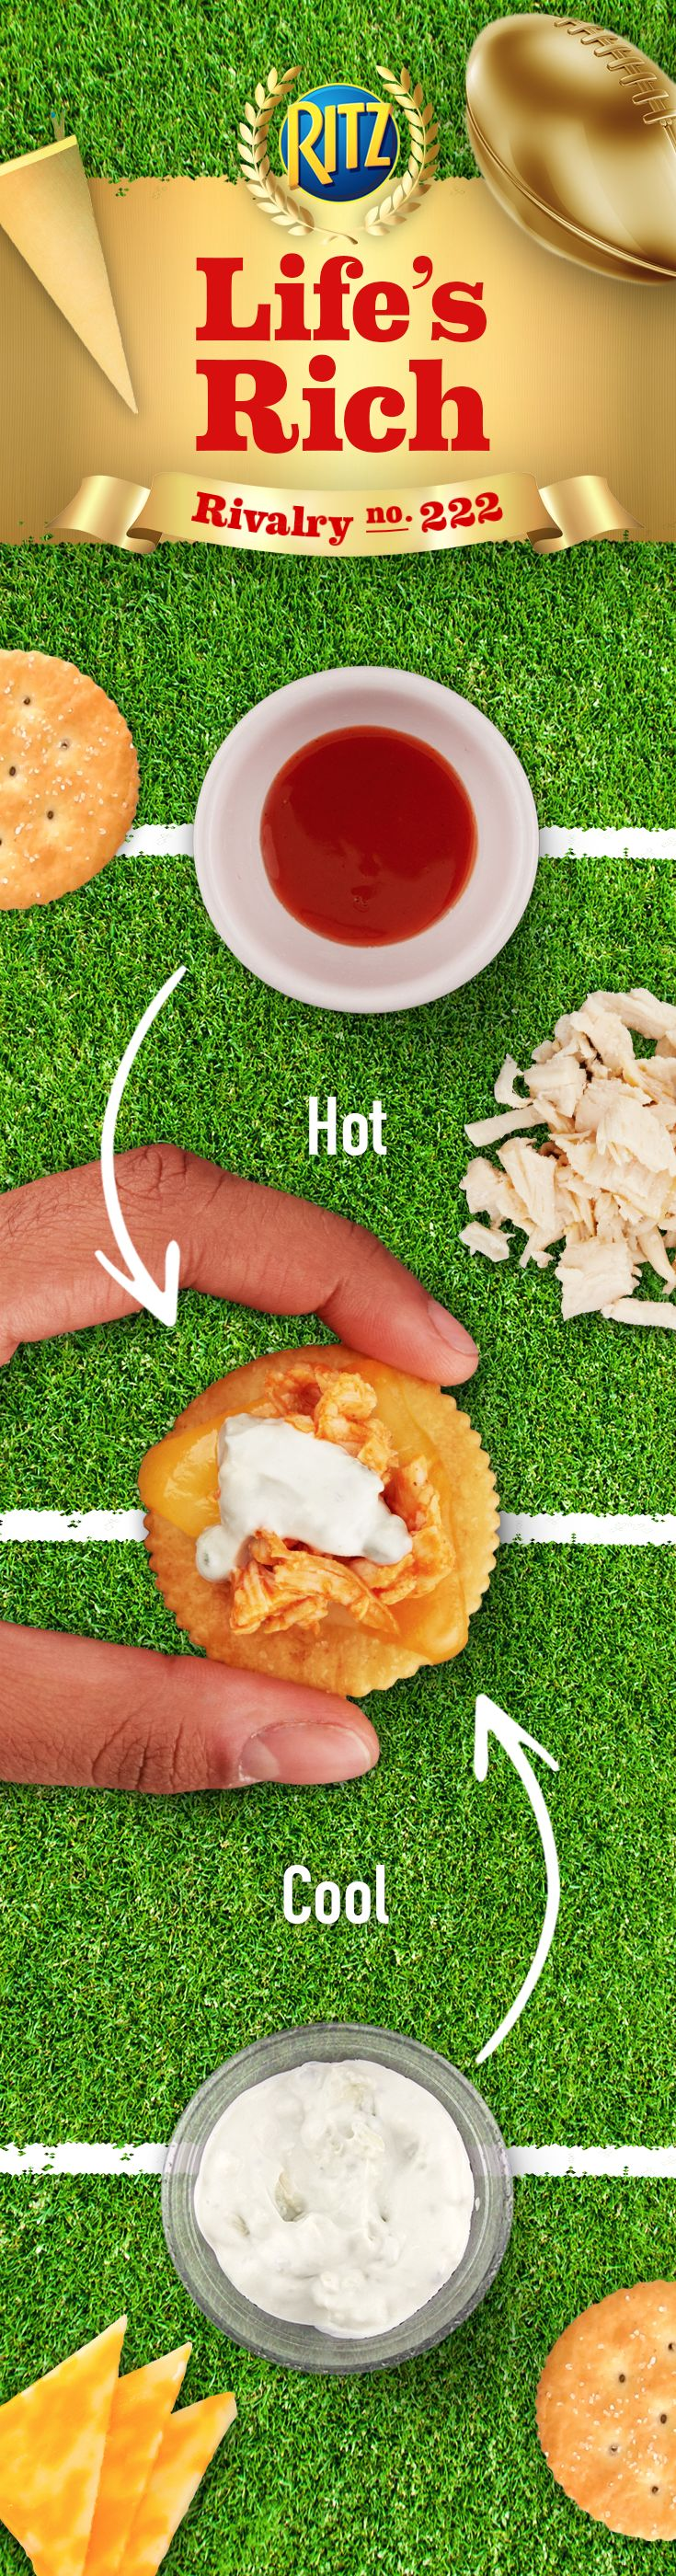 When opposites come together, beautiful things happen. Pair cool with hot & watch guests run down the field for more. For your football party, prep hot buffalo sauce combined with cool blue cheese in Kickin' Buffalo Cheese Bites. Follow this recipe for an easy appetizer snack: 1. Toss chopped, cooked chicken breast w/ buffalo wing sauce 2. Top RITZ Crackers w/ Colby & Monterey Jack cheeses 3. Add buffalo chicken mixture 4. Microwave until cheese melts 5. Drizzle w/ blue cheese dressing.